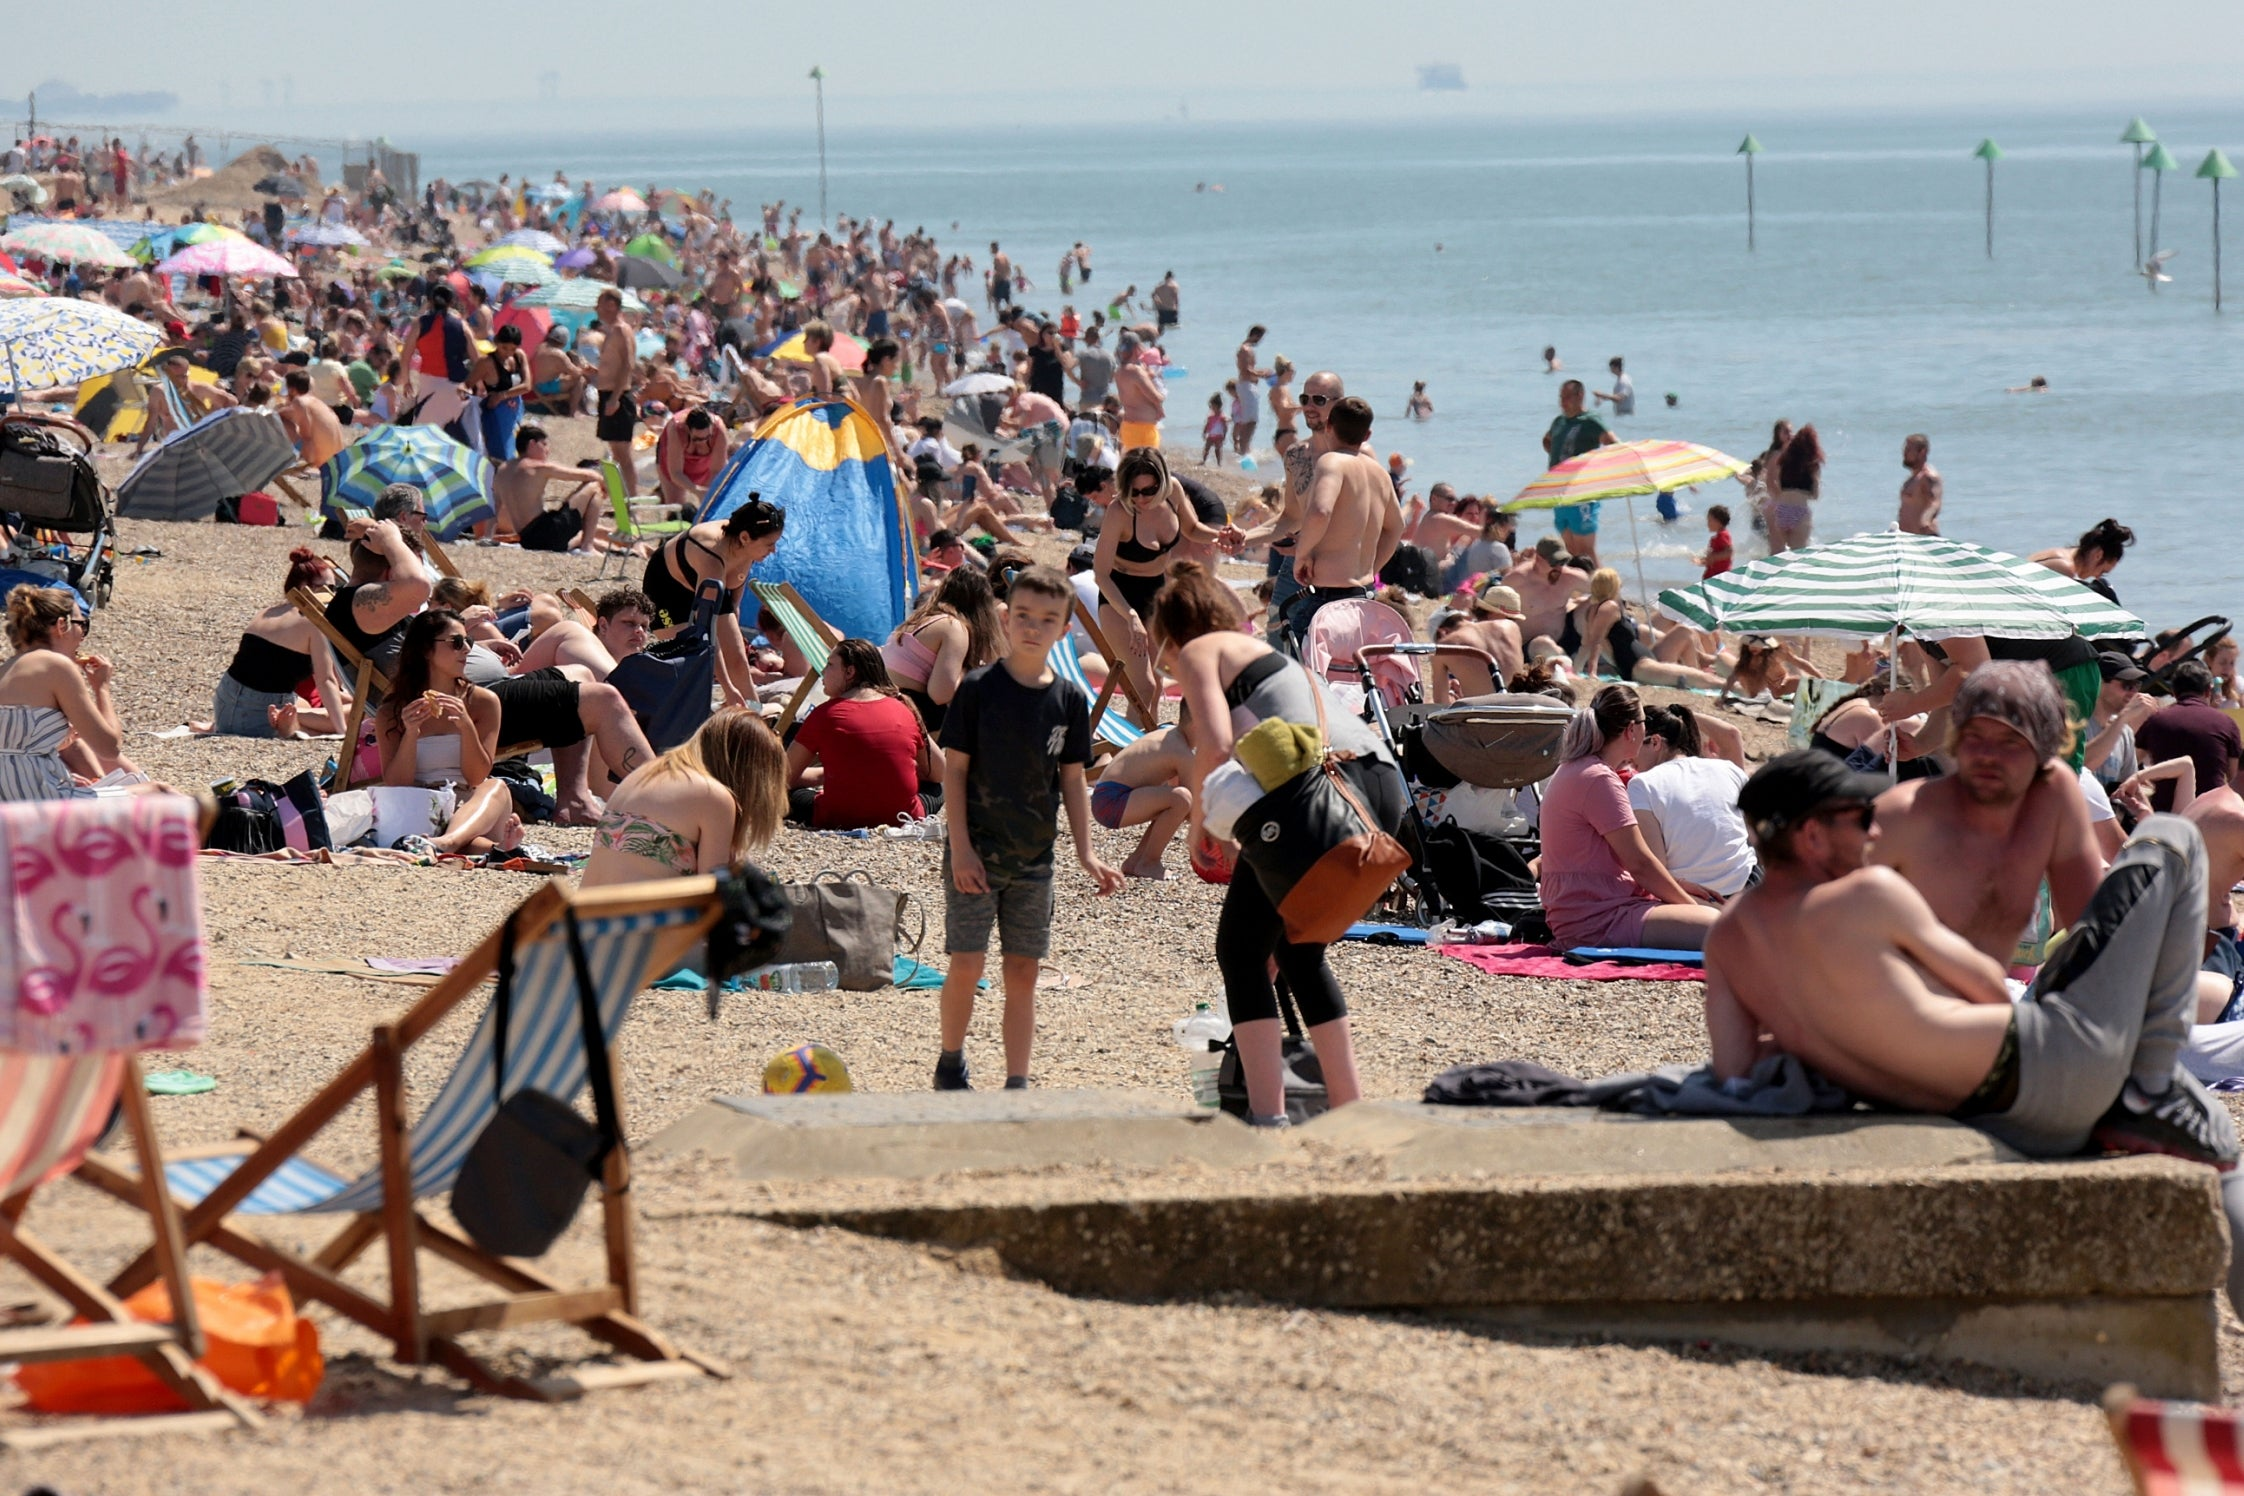 Sunseekers packed Southend beach as the heatwave challenged social distancing rules. (Video) 17